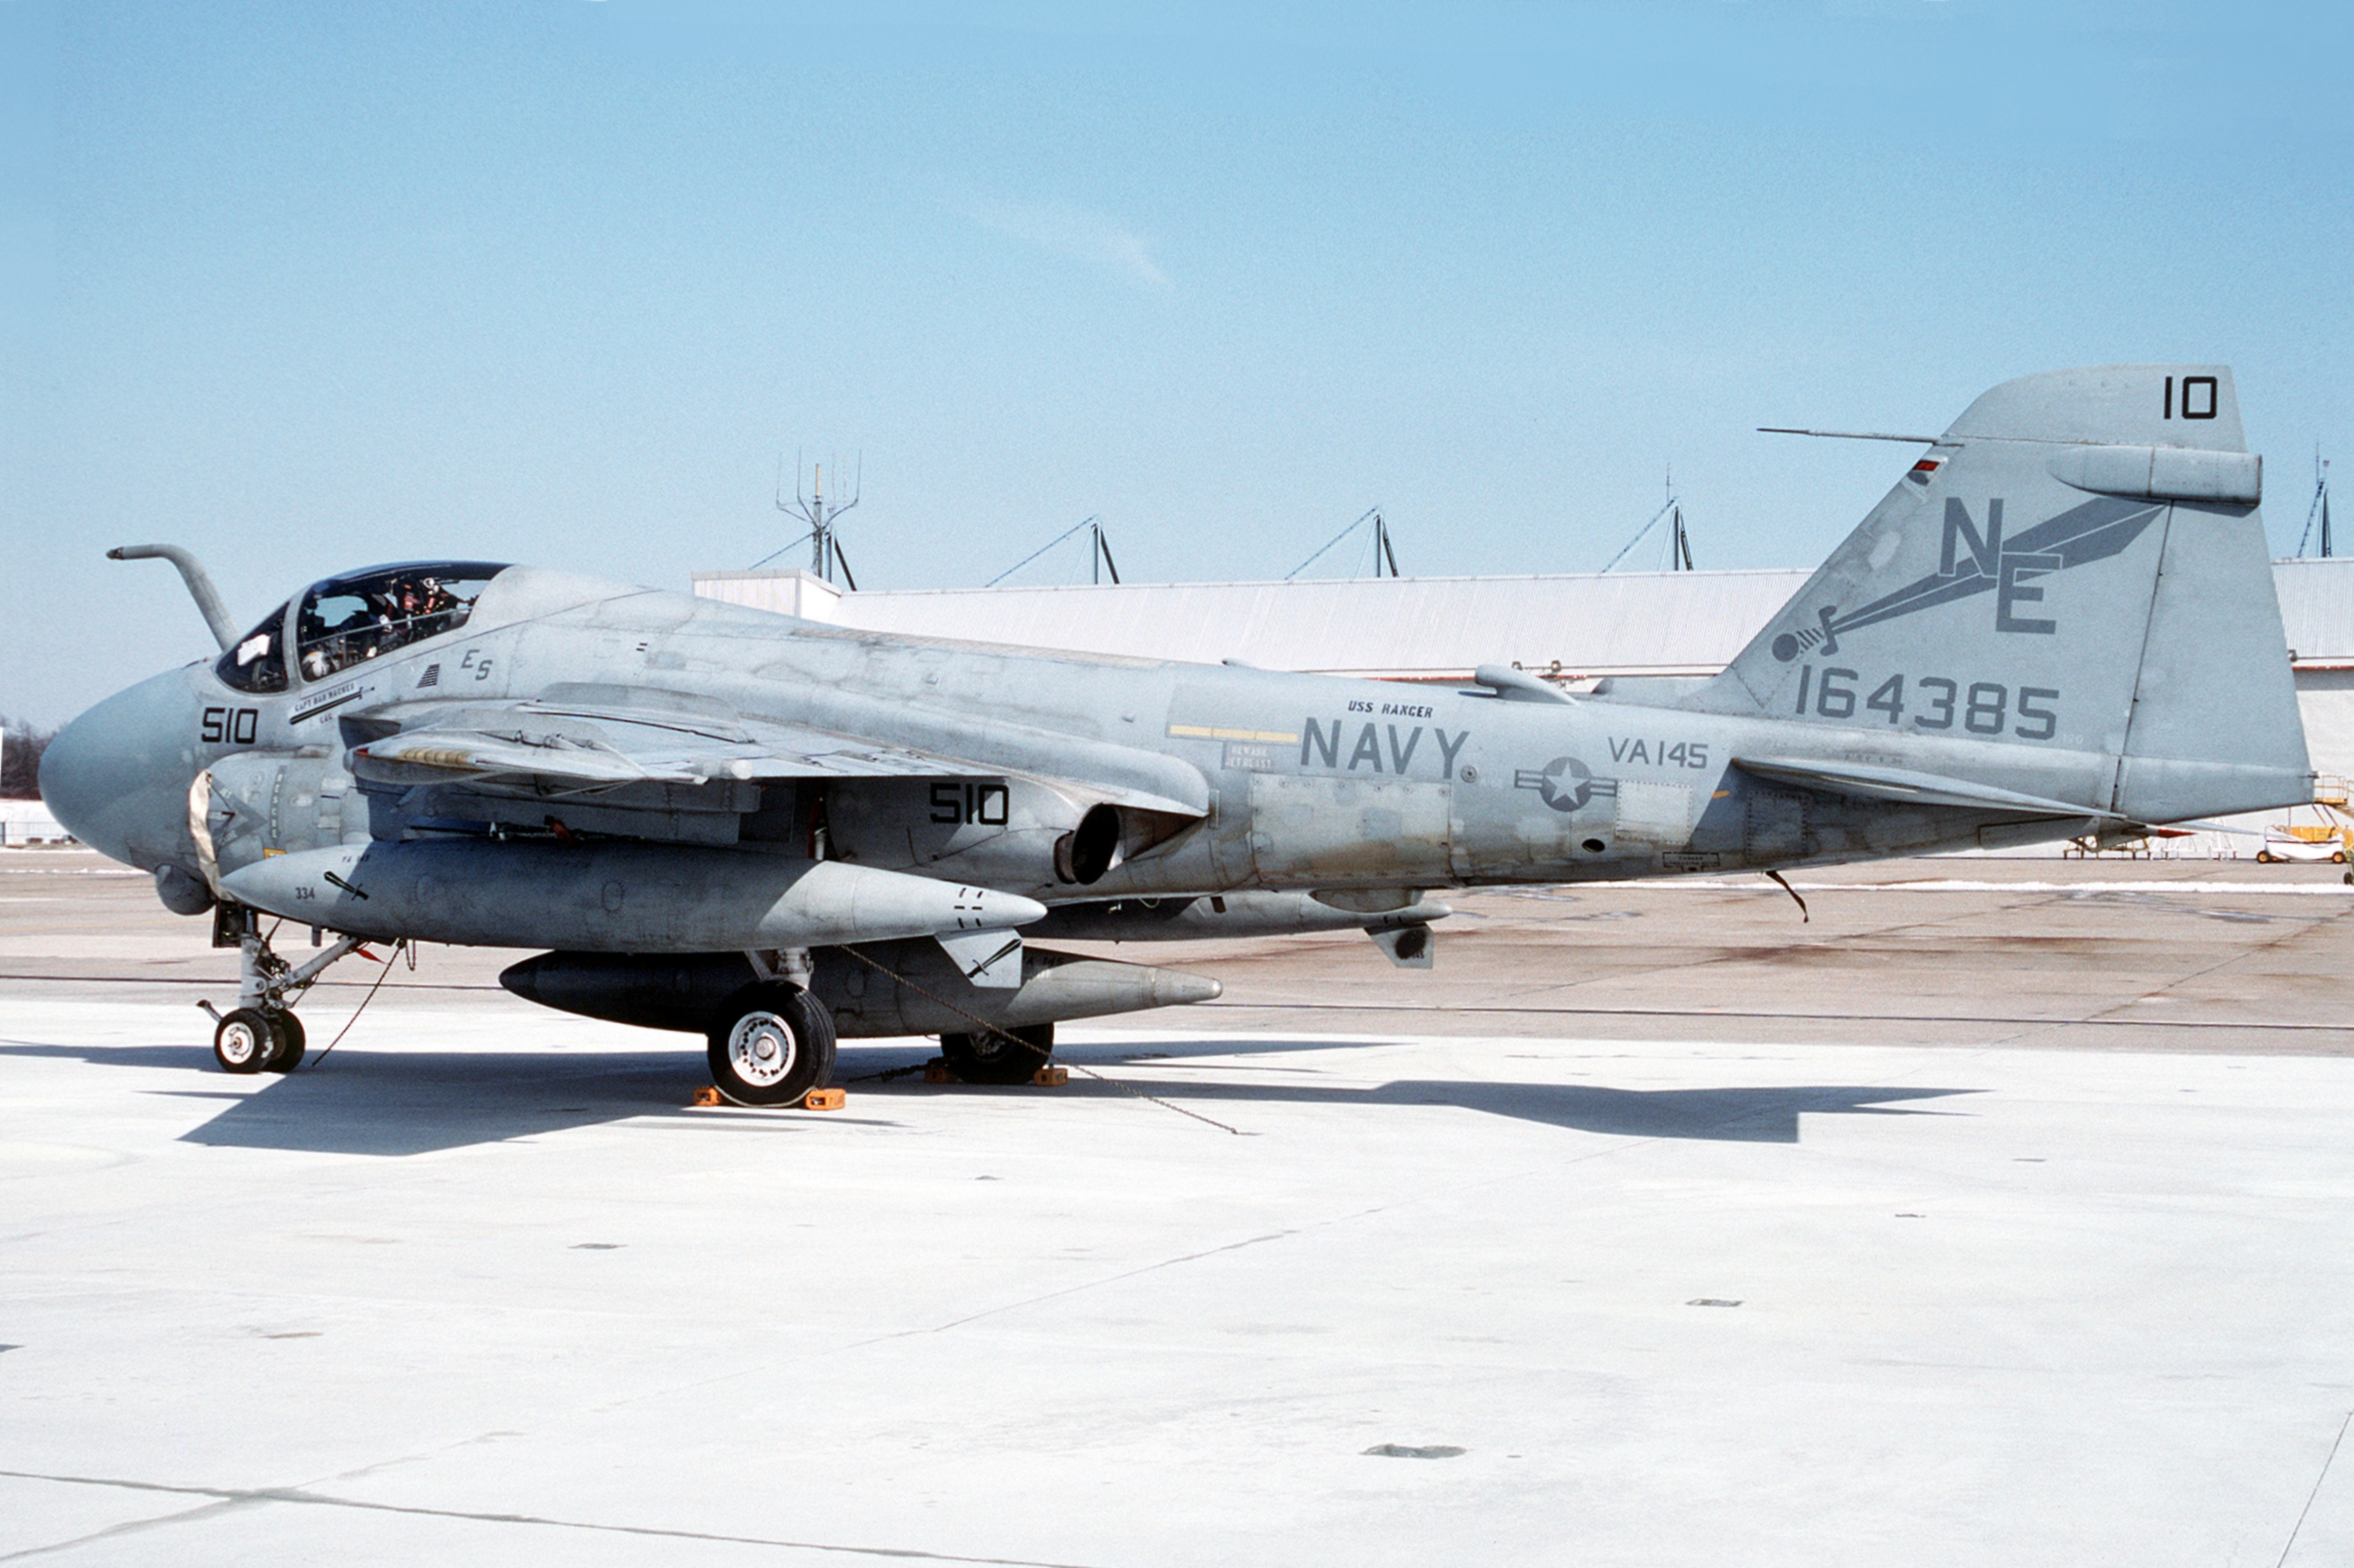 A-6E_Intruder_of_VA-145_in_1992